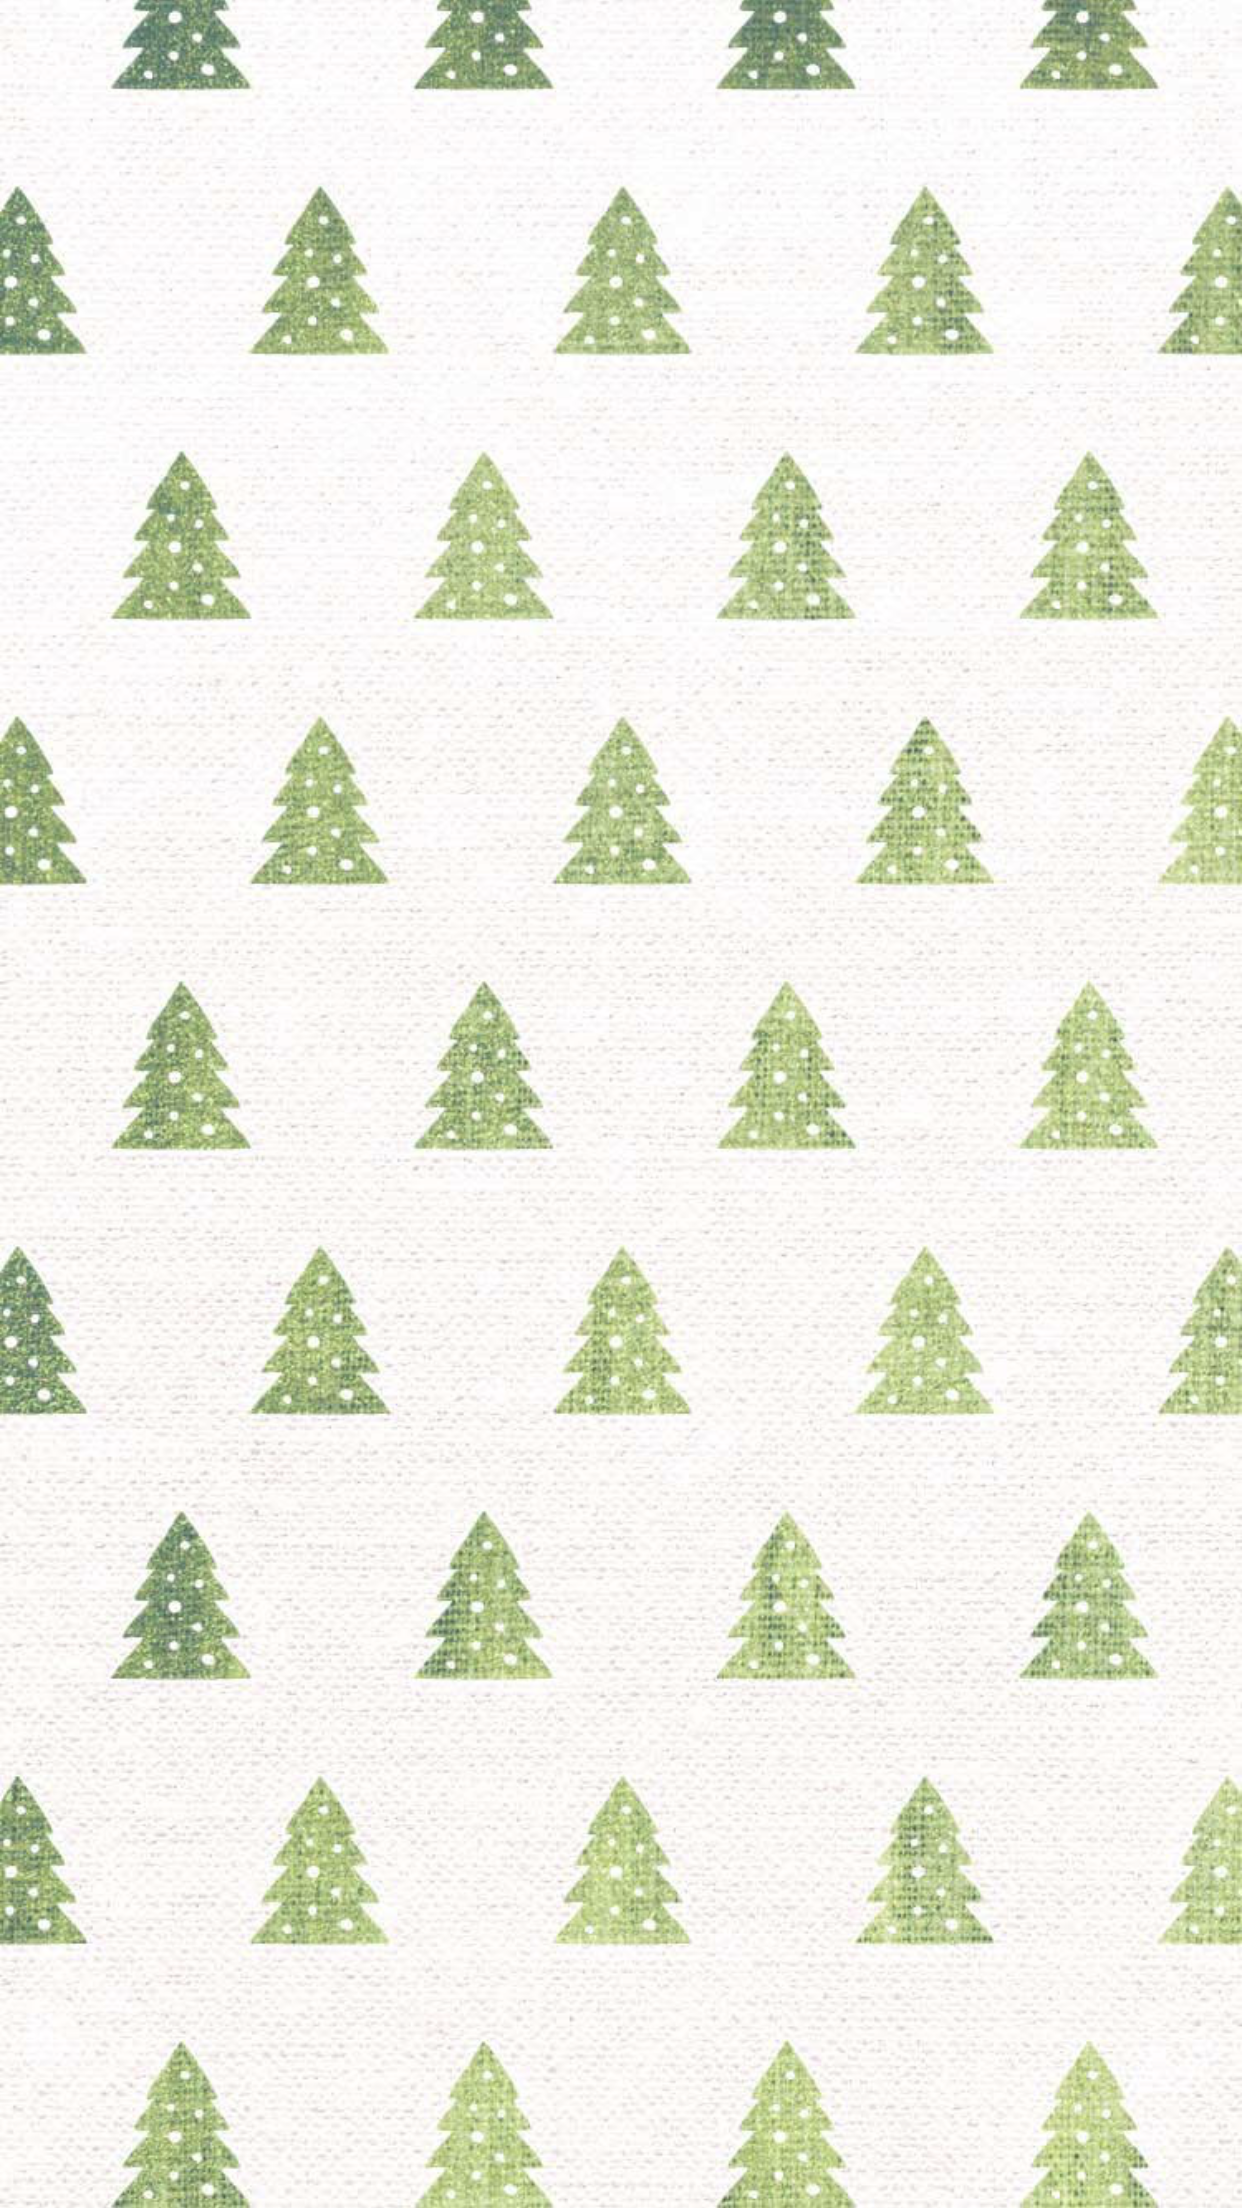 Pin by Caitlin Chung on Seasonal Wallpaper iphone